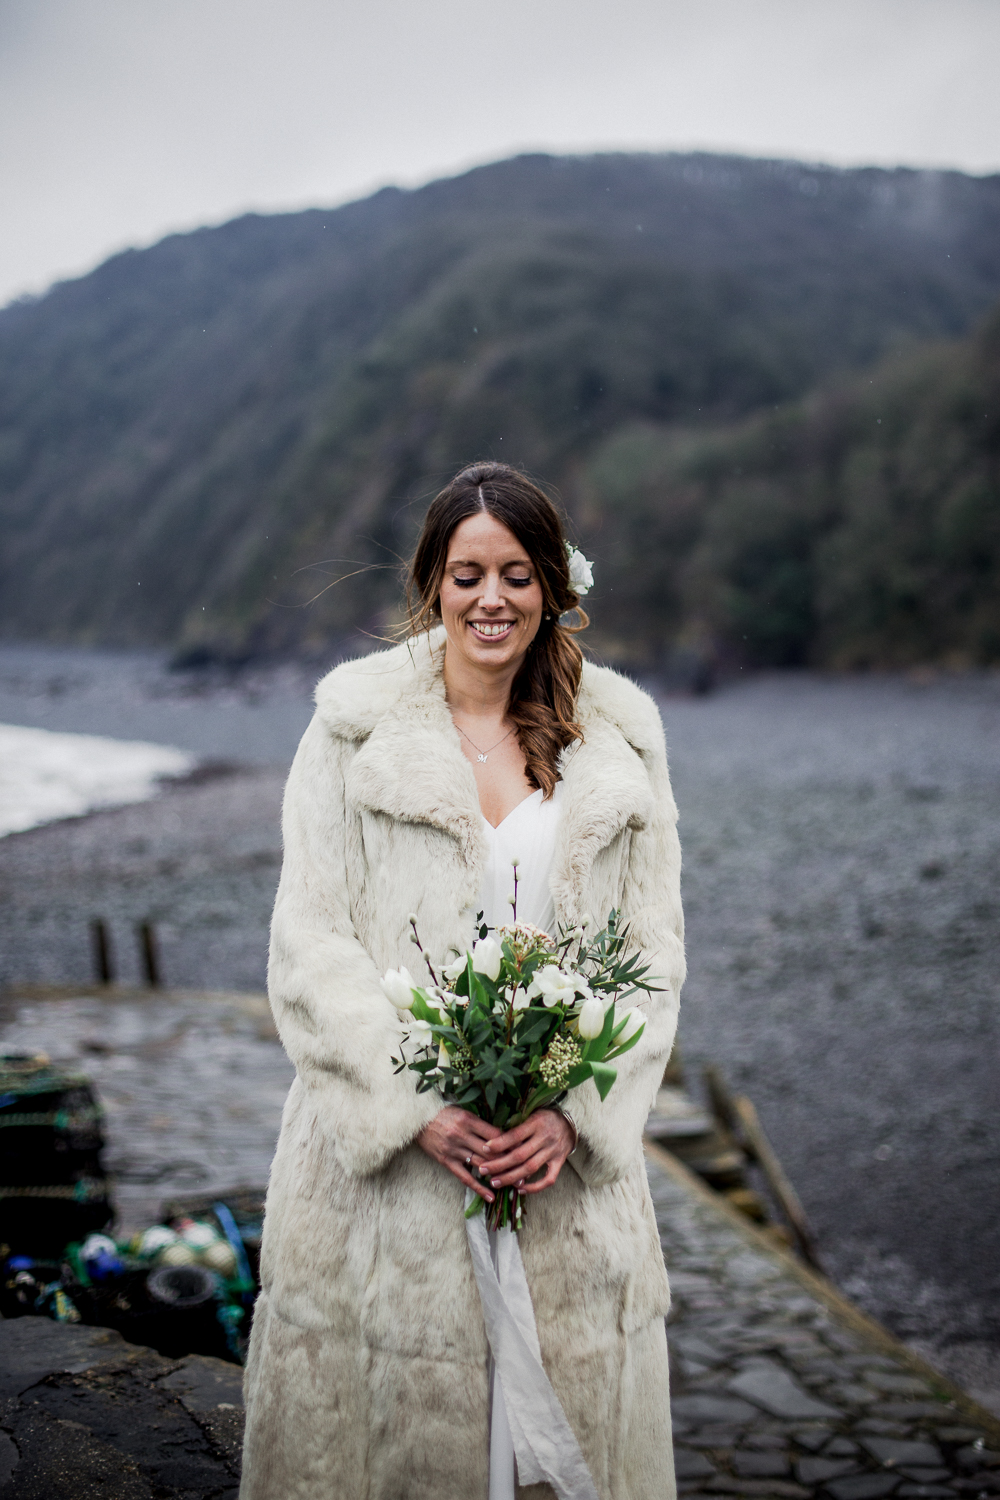 The_Old_Barn_North_Devon_Wedding_Photographer-12.jpg